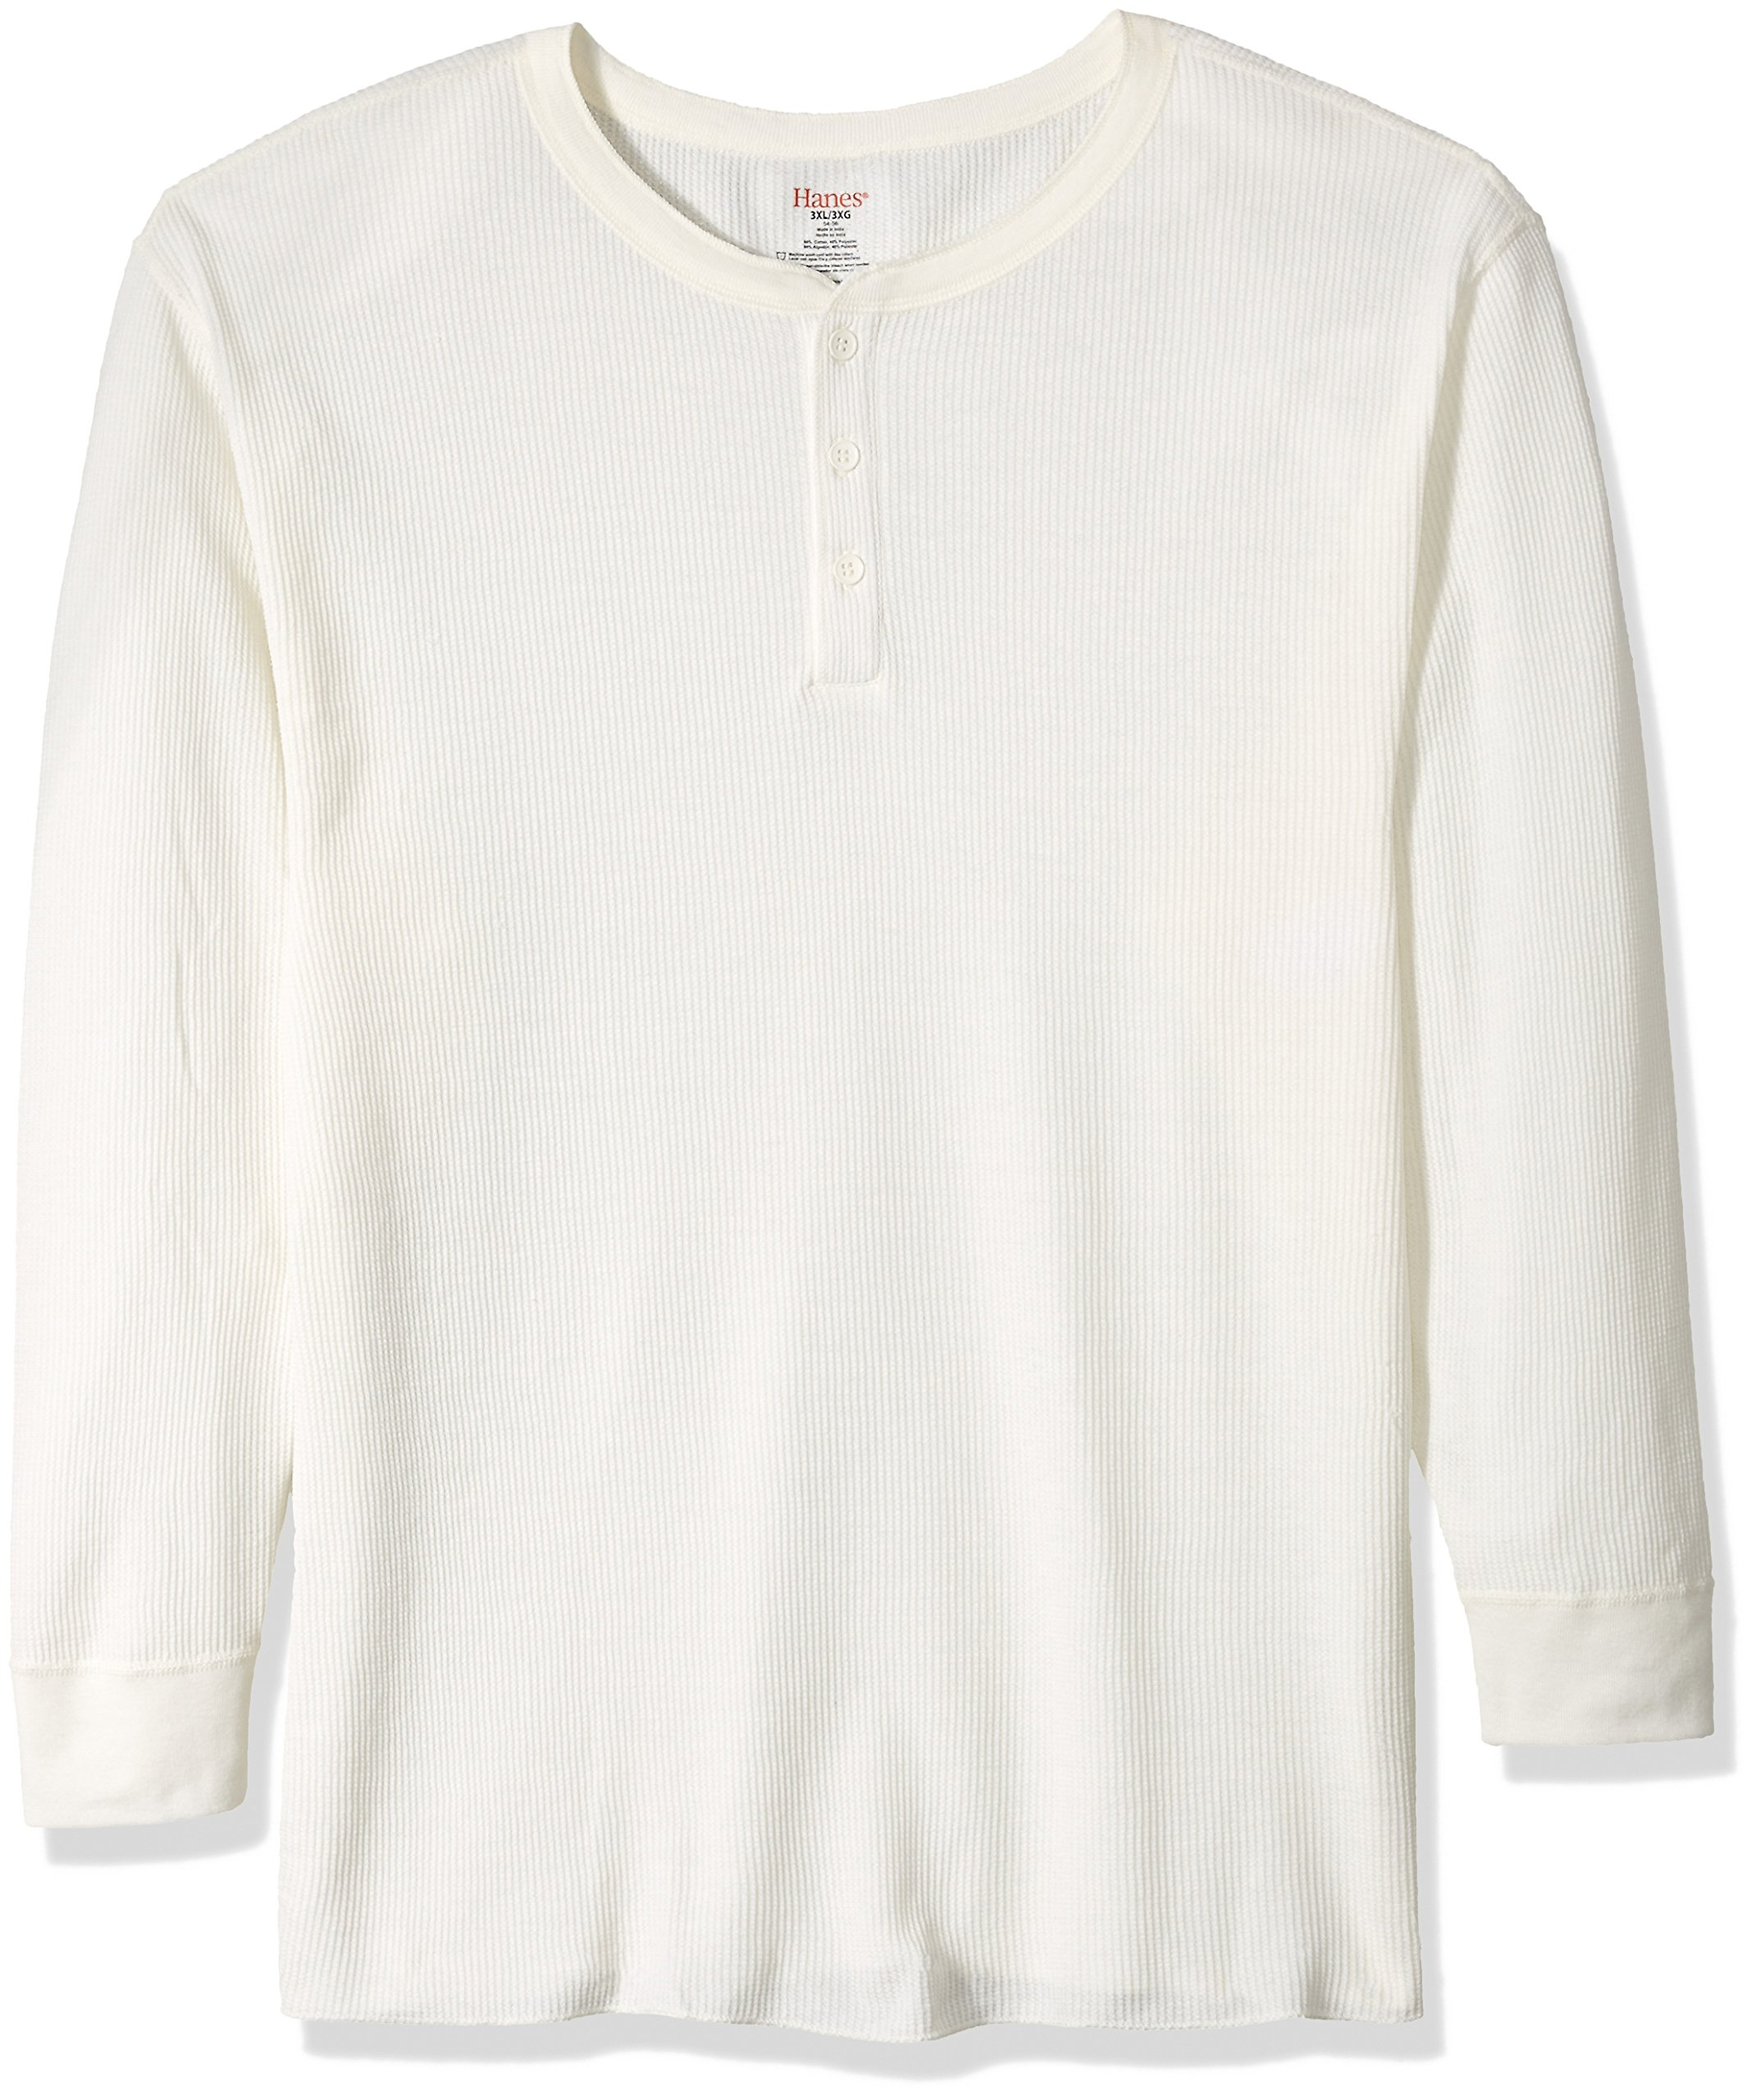 Hanes Tall Men's Big Red Label X-Temp Thermal Henley, Natural, 3X Large by Hanes